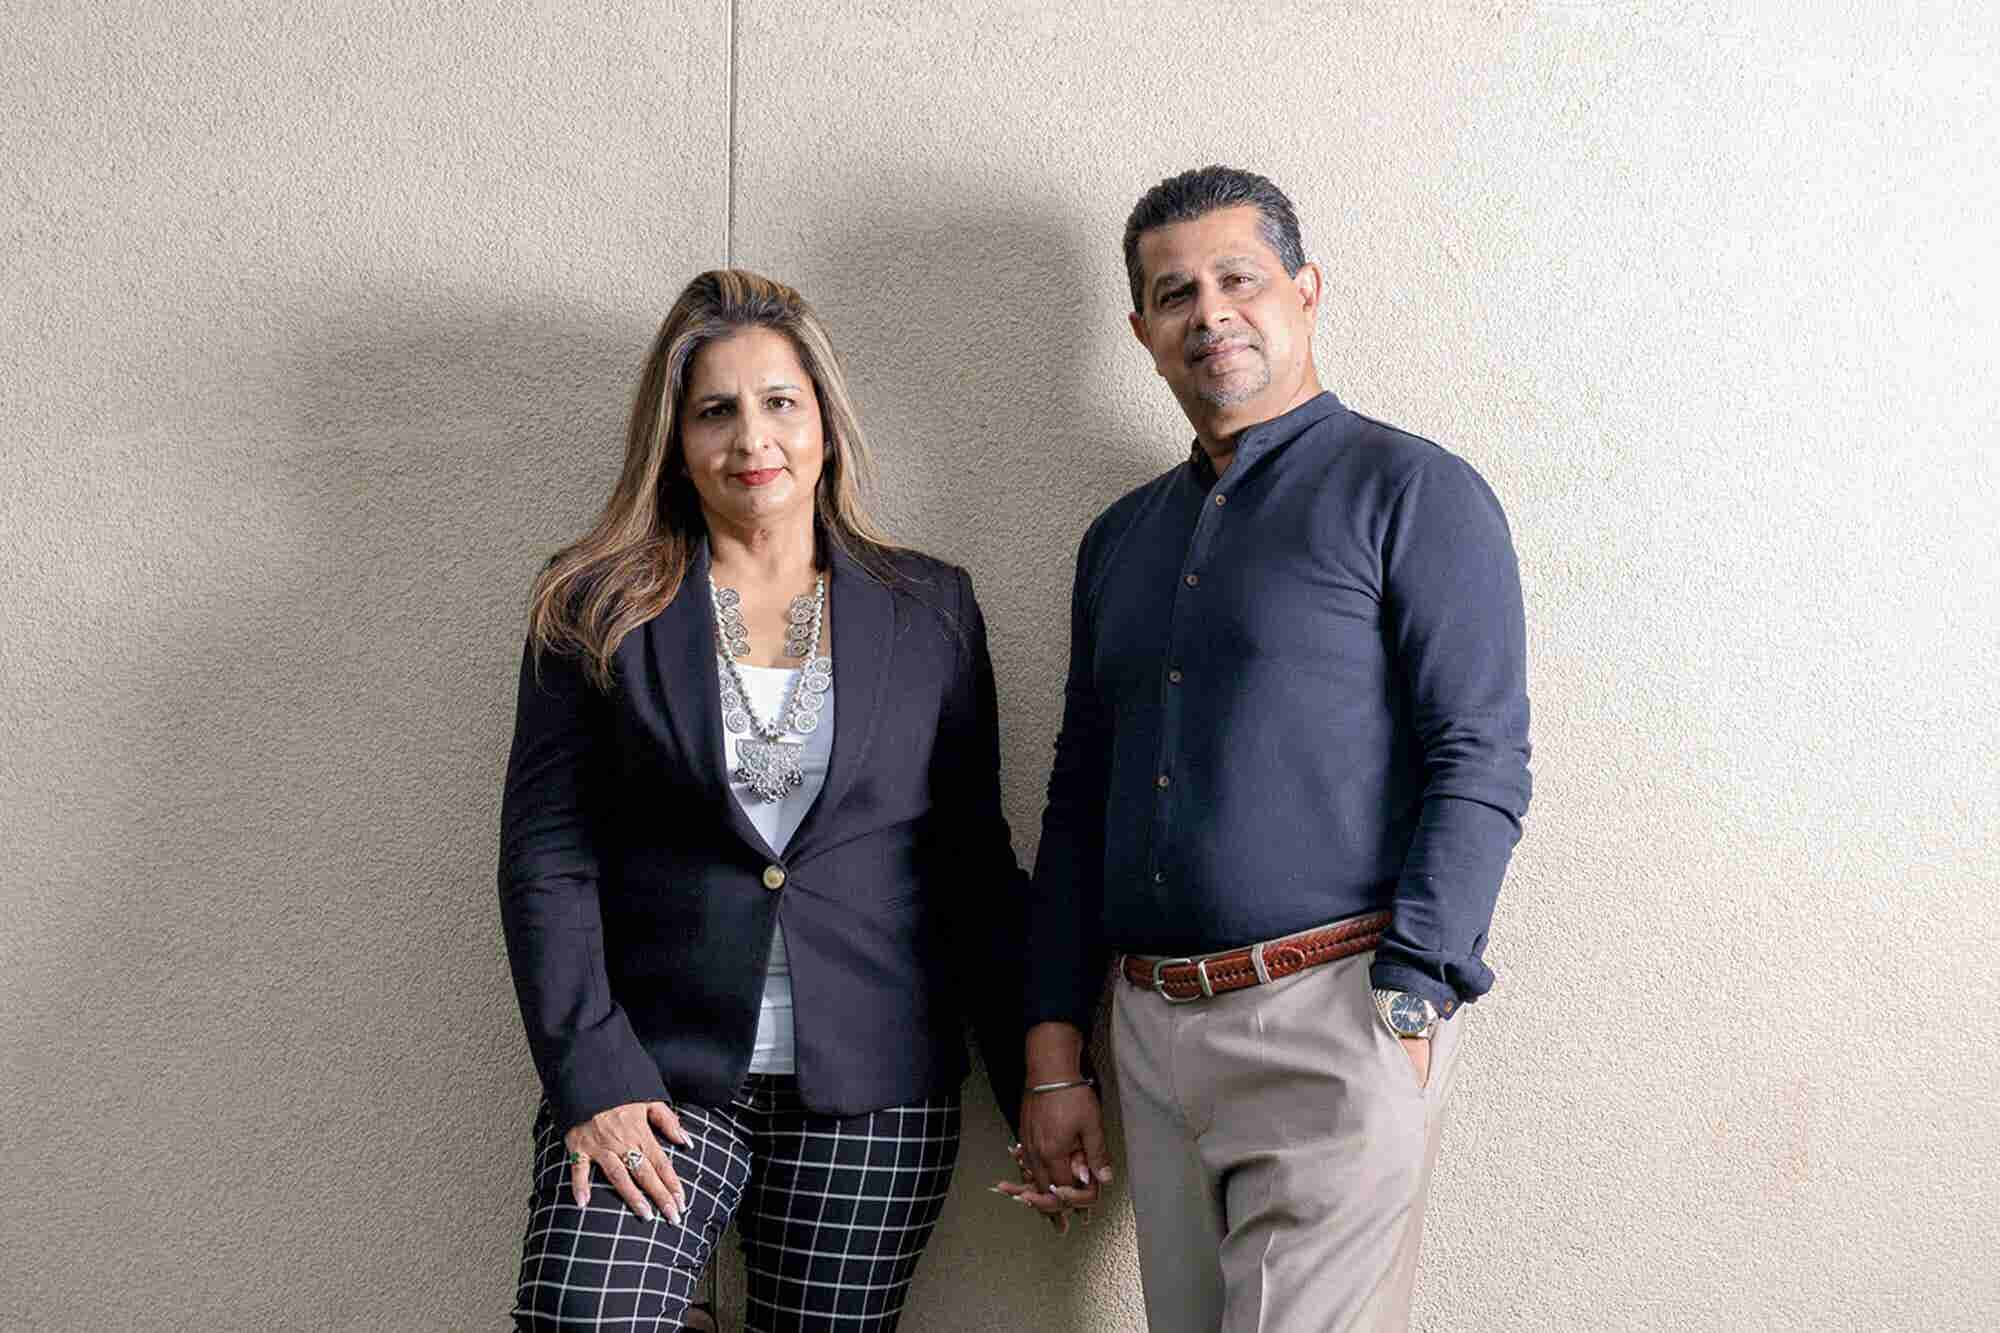 Why These Garment Industry Vets Left Their Business to Become Early-Education Franchisees